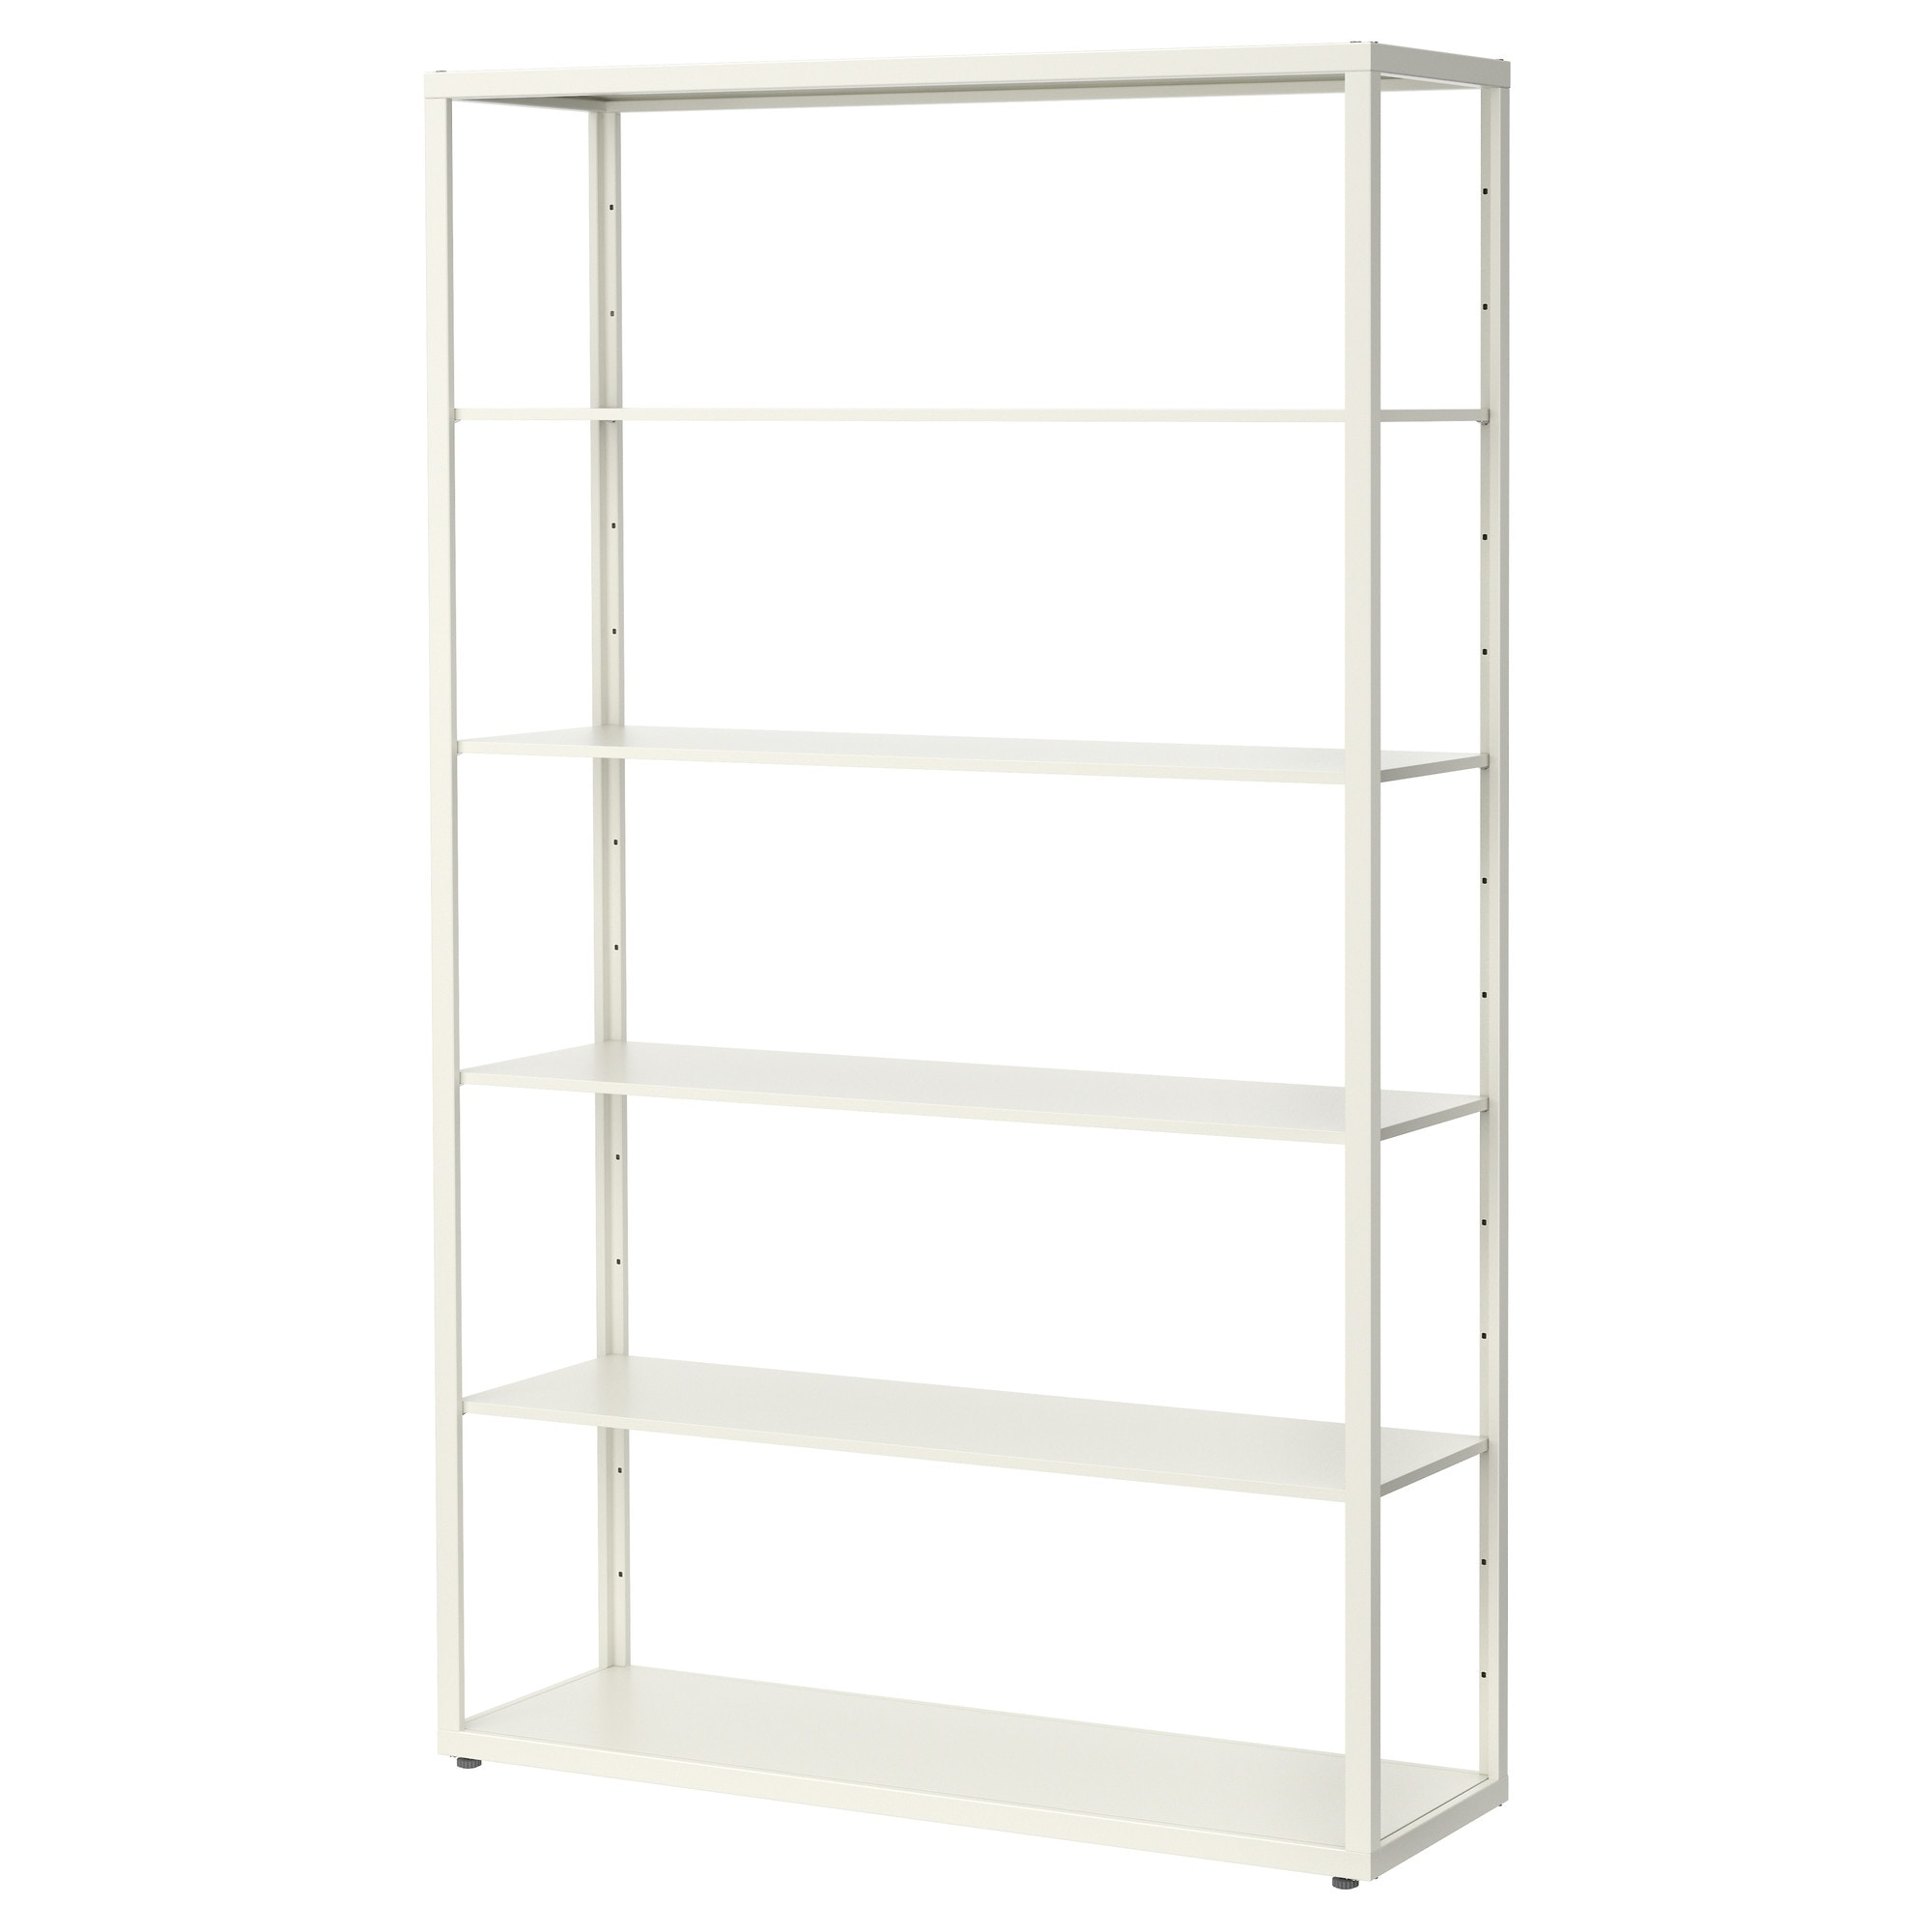 . FJ LKINGE Shelf unit   IKEA